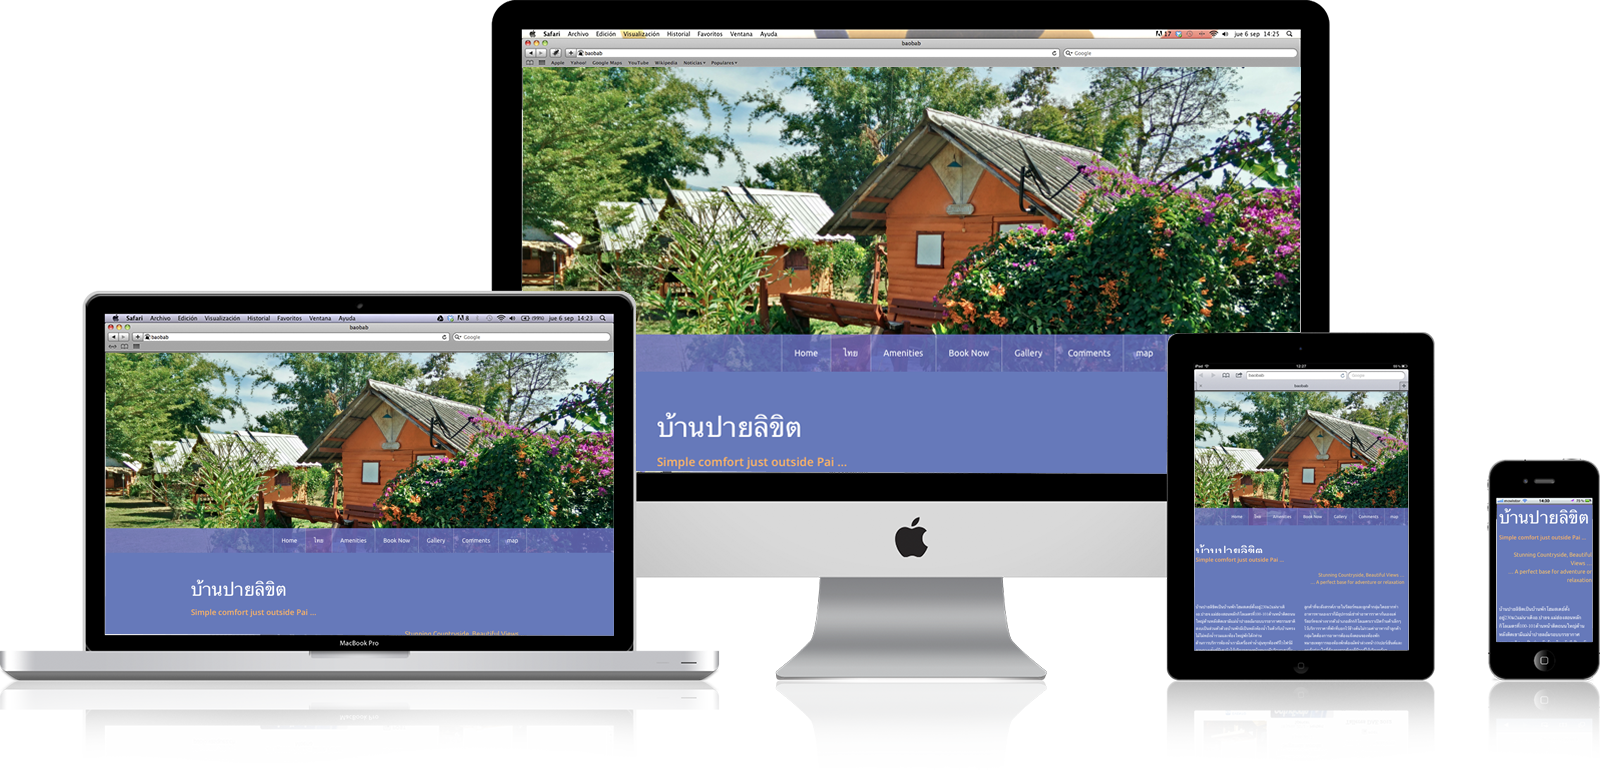 Multilingual Website design for Pai-riikit.com - a resort in Pai Thailand